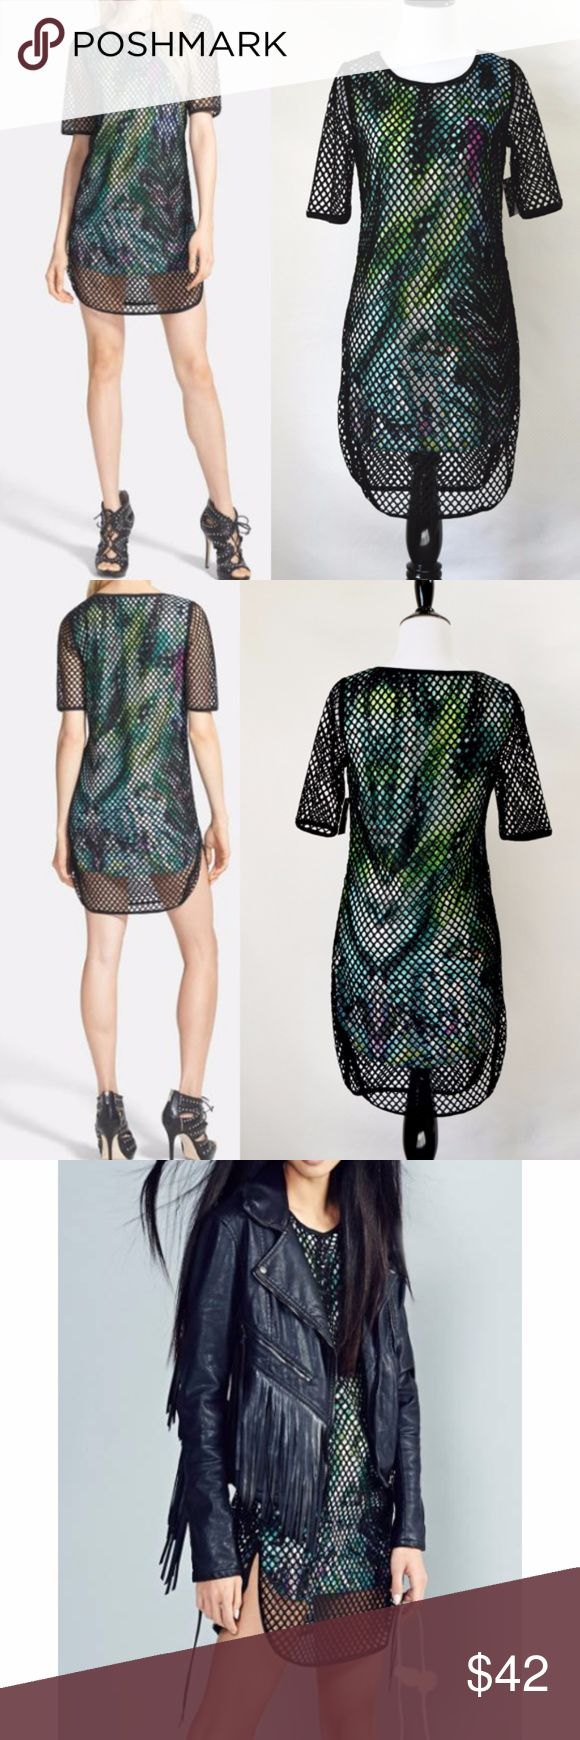 """NWT PacSun Foxiedox Tropicana Mesh Dress Sleeveless mini dress patterned with a splashy jungle print Sporty, ultra-modern look Colorful pattern with a mesh overlay Sheer sleeves and light weight fabric  Lined. 100% polyester. Machine wash cold Size small (34"""" length 12"""" sleeve length) PacSun Dresses Mini"""